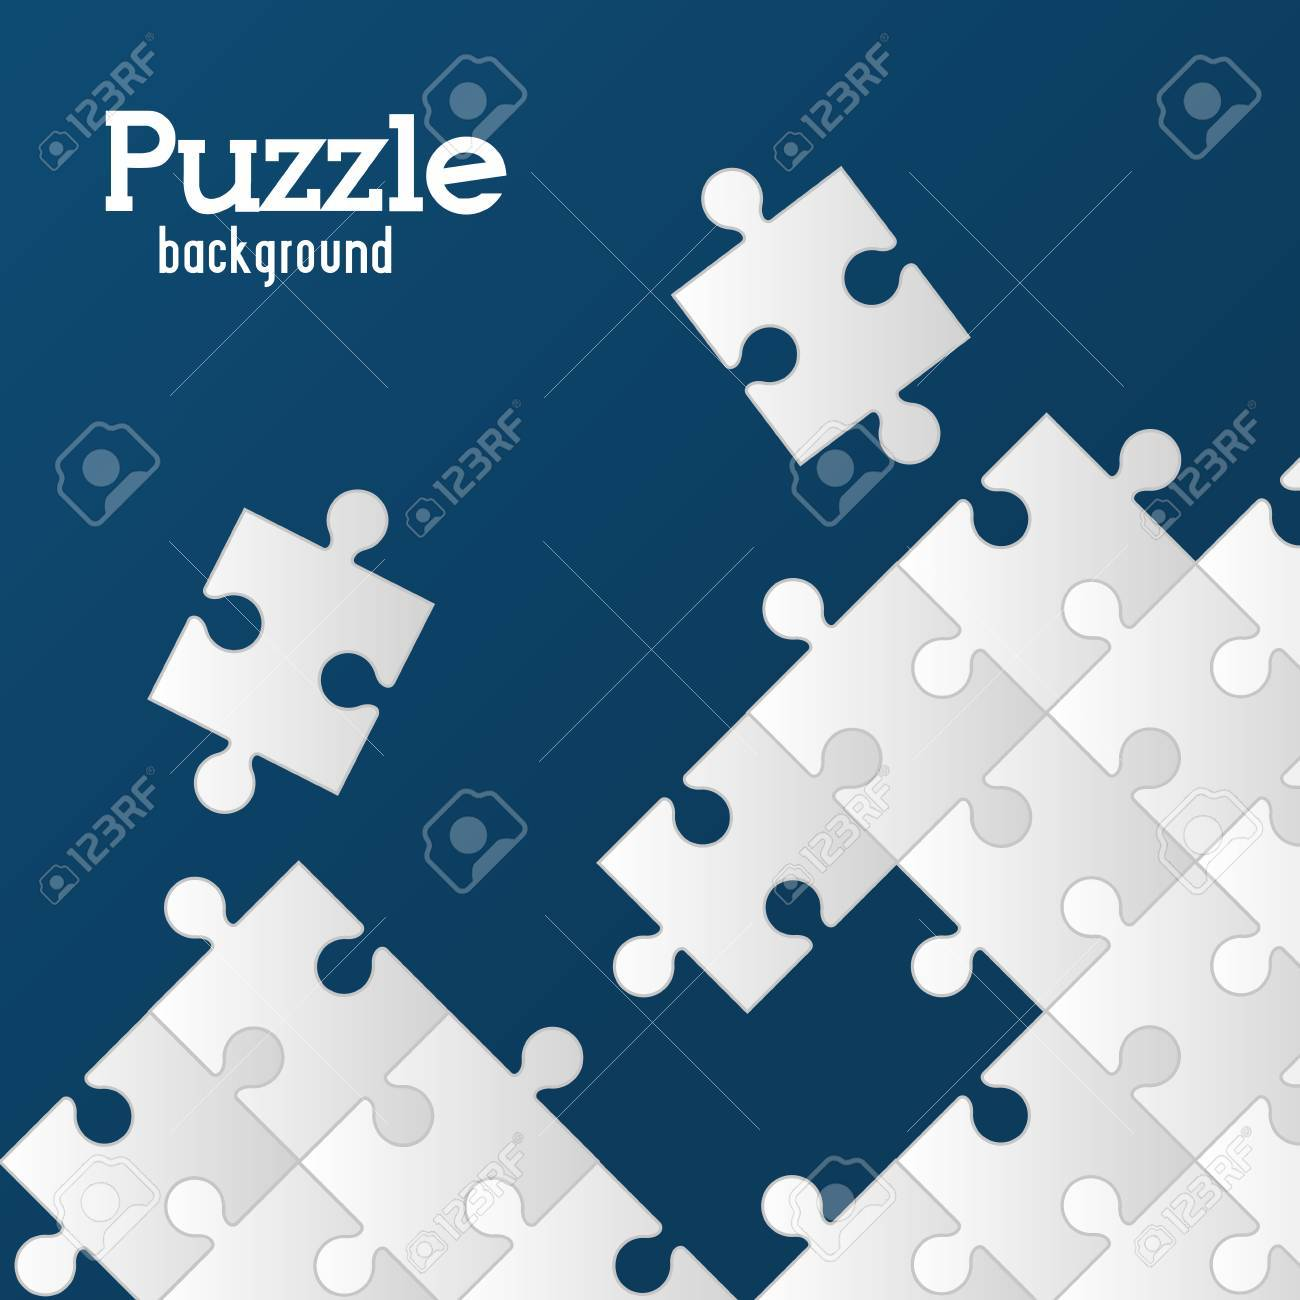 Puzzle concept with jigsaw pieces icons design, vector illustration 10 eps graphic. - 46463626